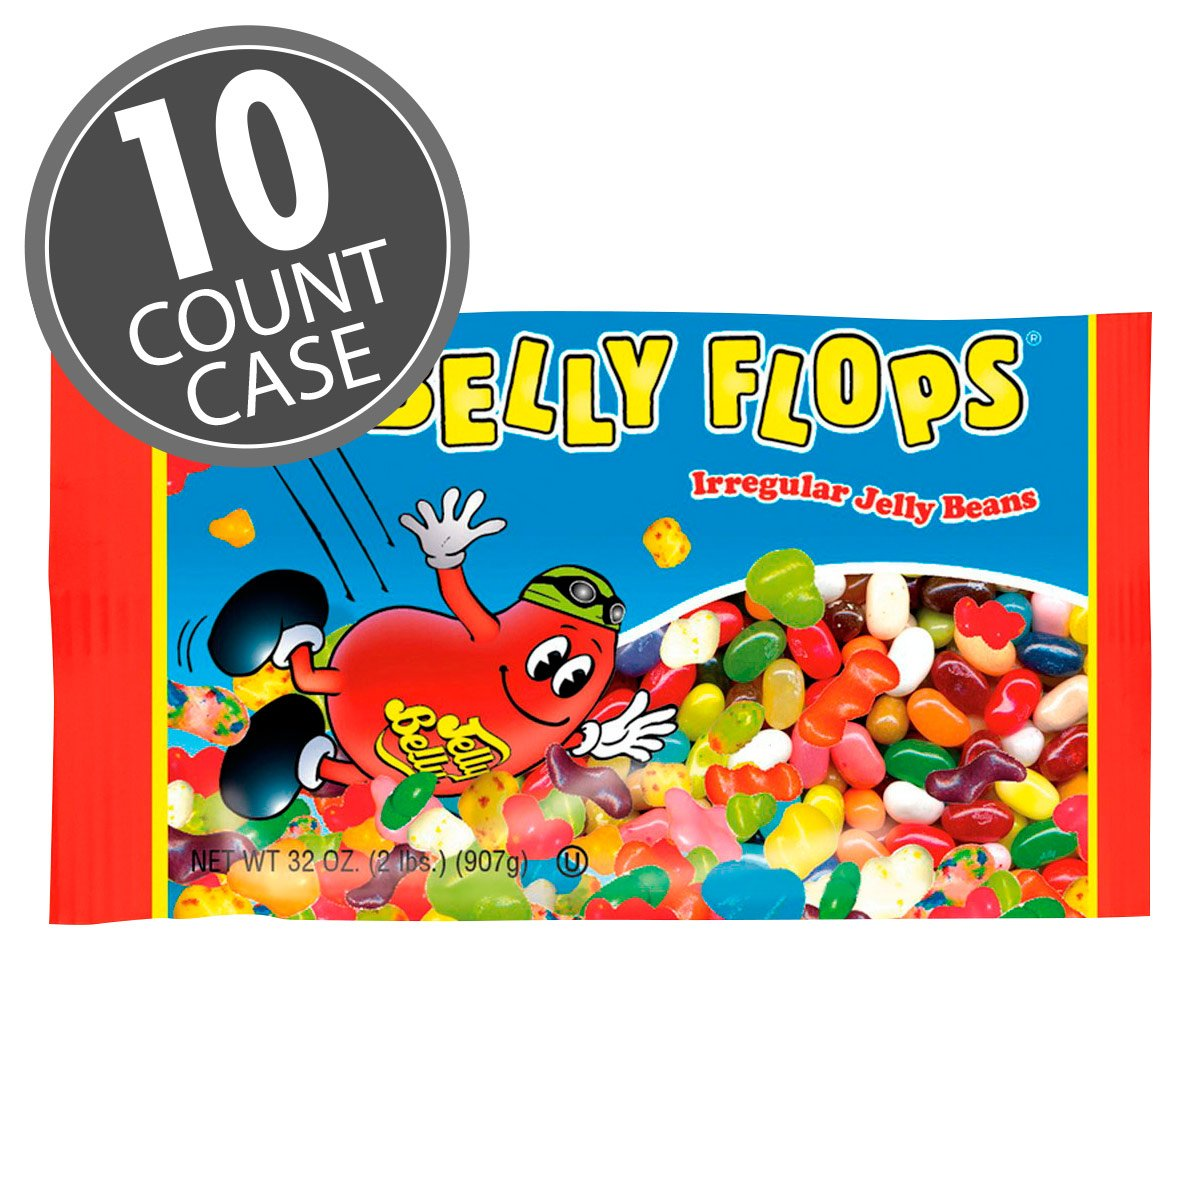 Jelly Belly Belly Flops Jelly Beans - 10 x 2 Pound Bags of Irregular Jelly Beans - Assorted Flavors - 10 Count Case - Official, Genuine, Straight from the Source by Jelly Belly